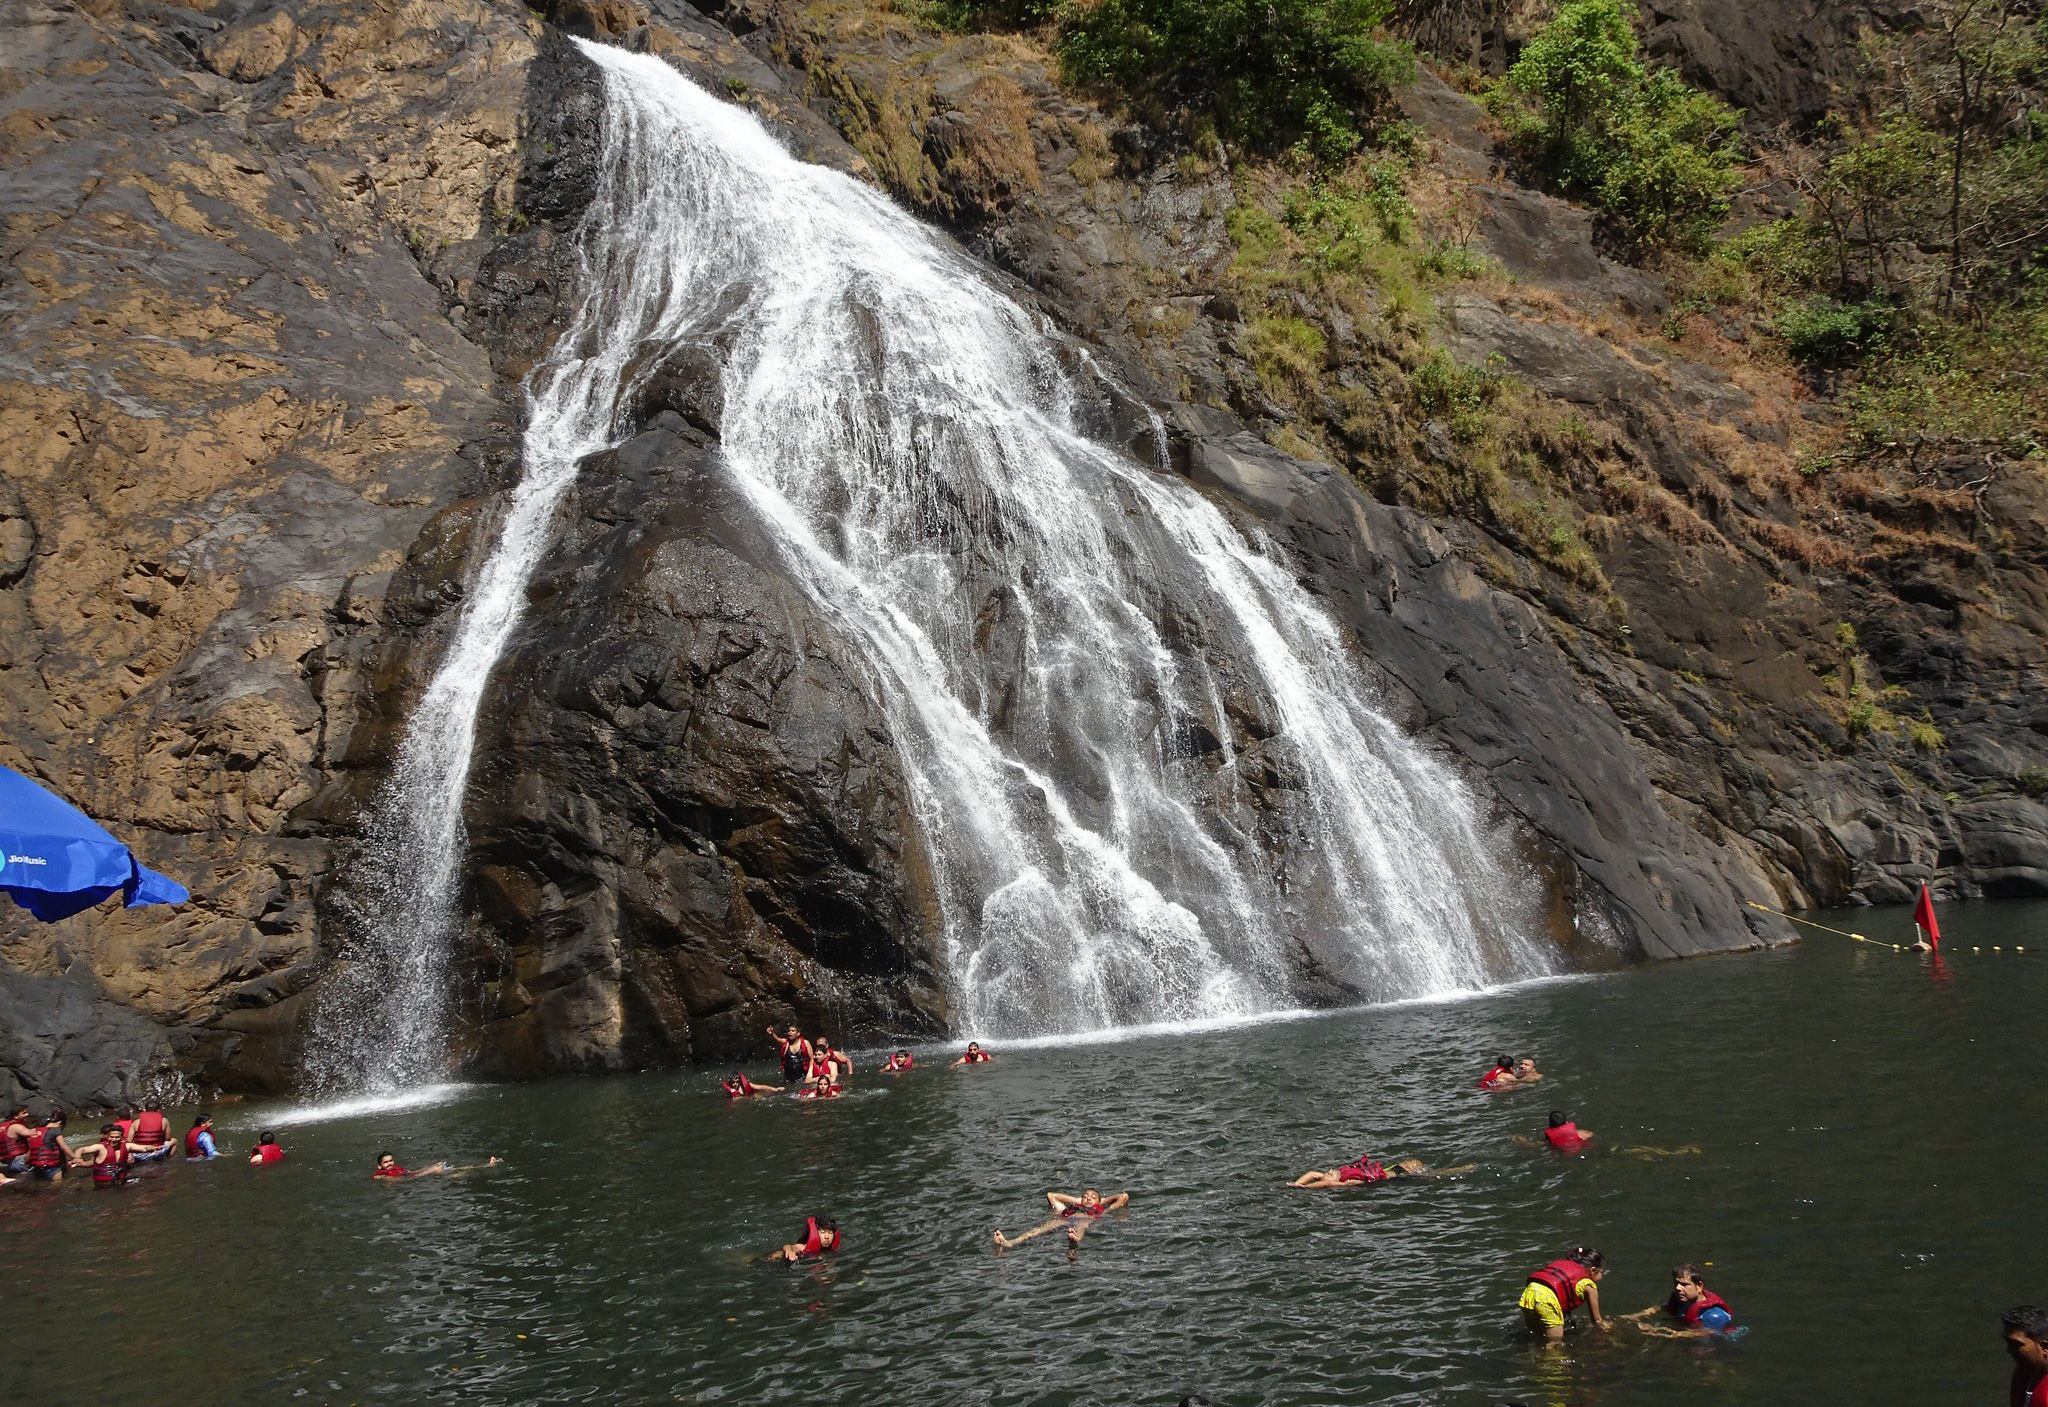 Best Things to do In Goa During the Monsoon - Visit the Magnificent Dudhsagar Waterfalls